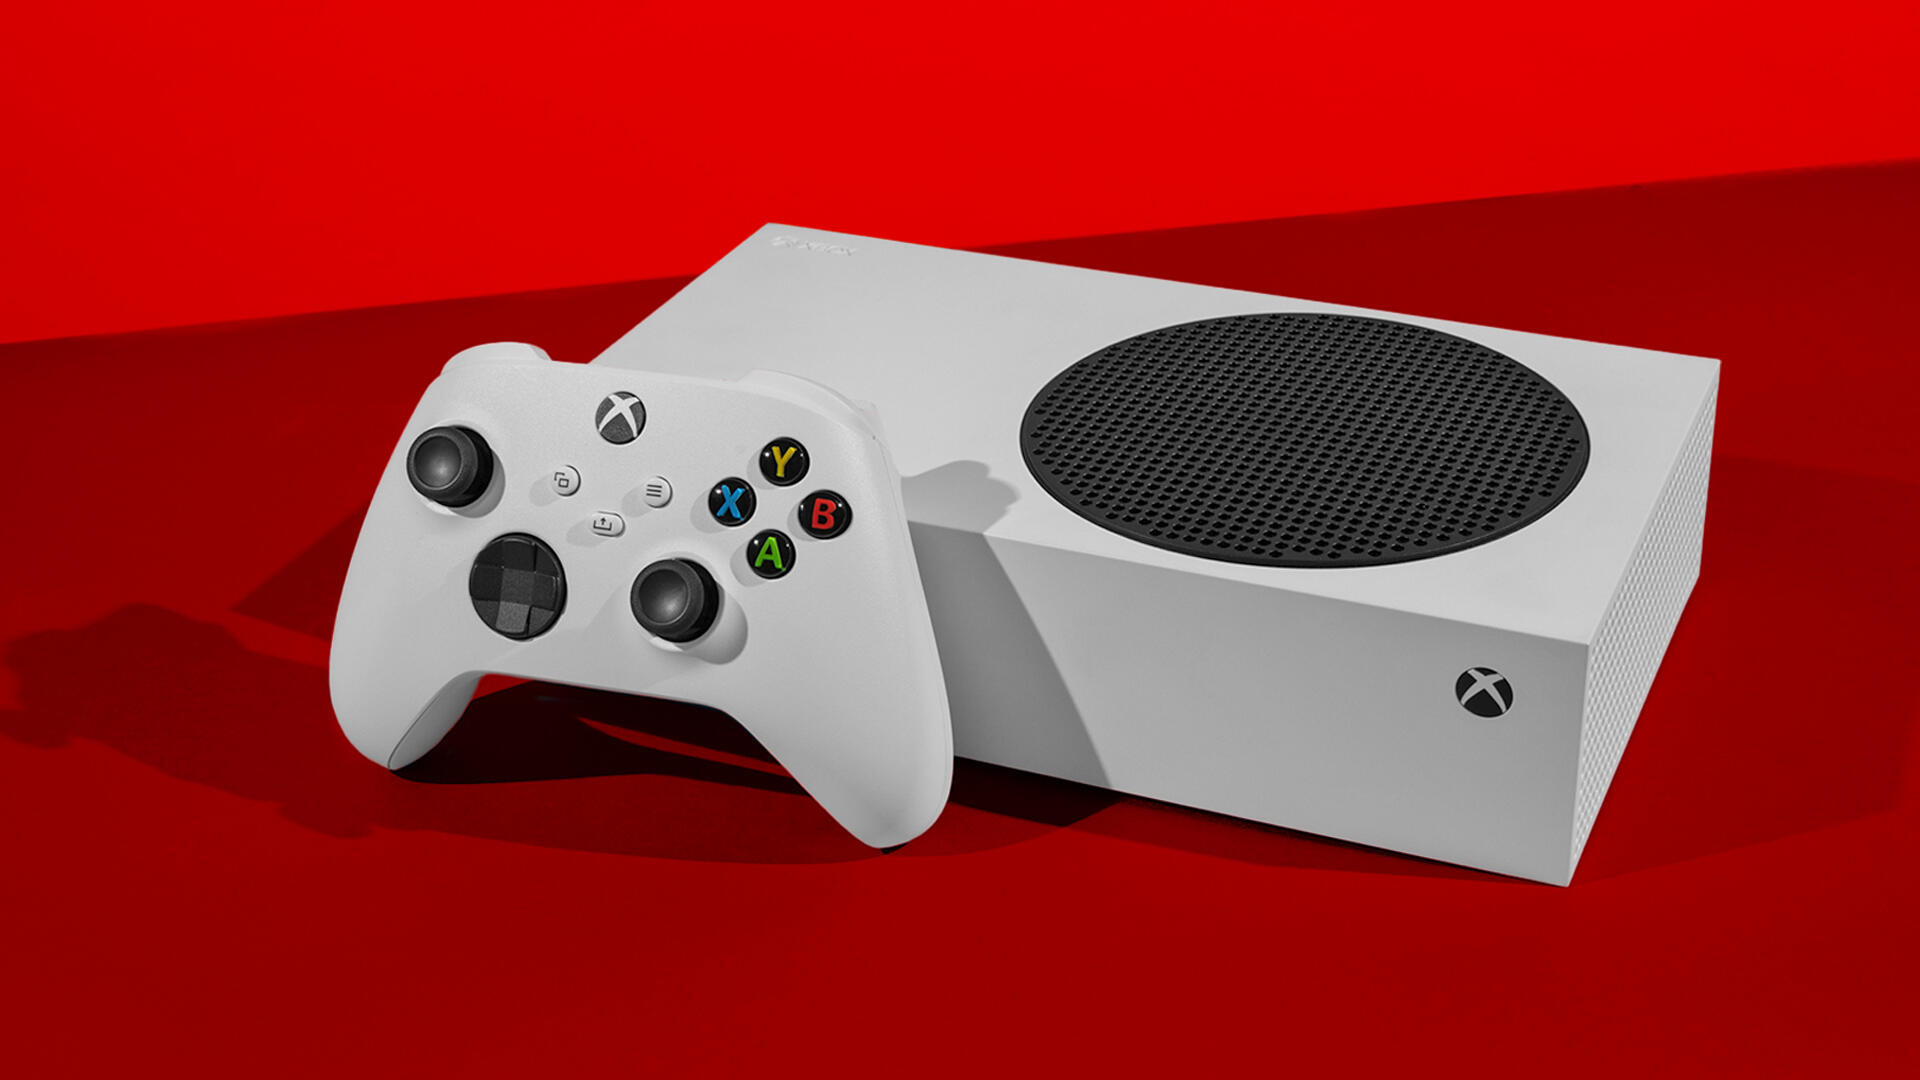 Best Xbox Series X or Series S accessories for 2021